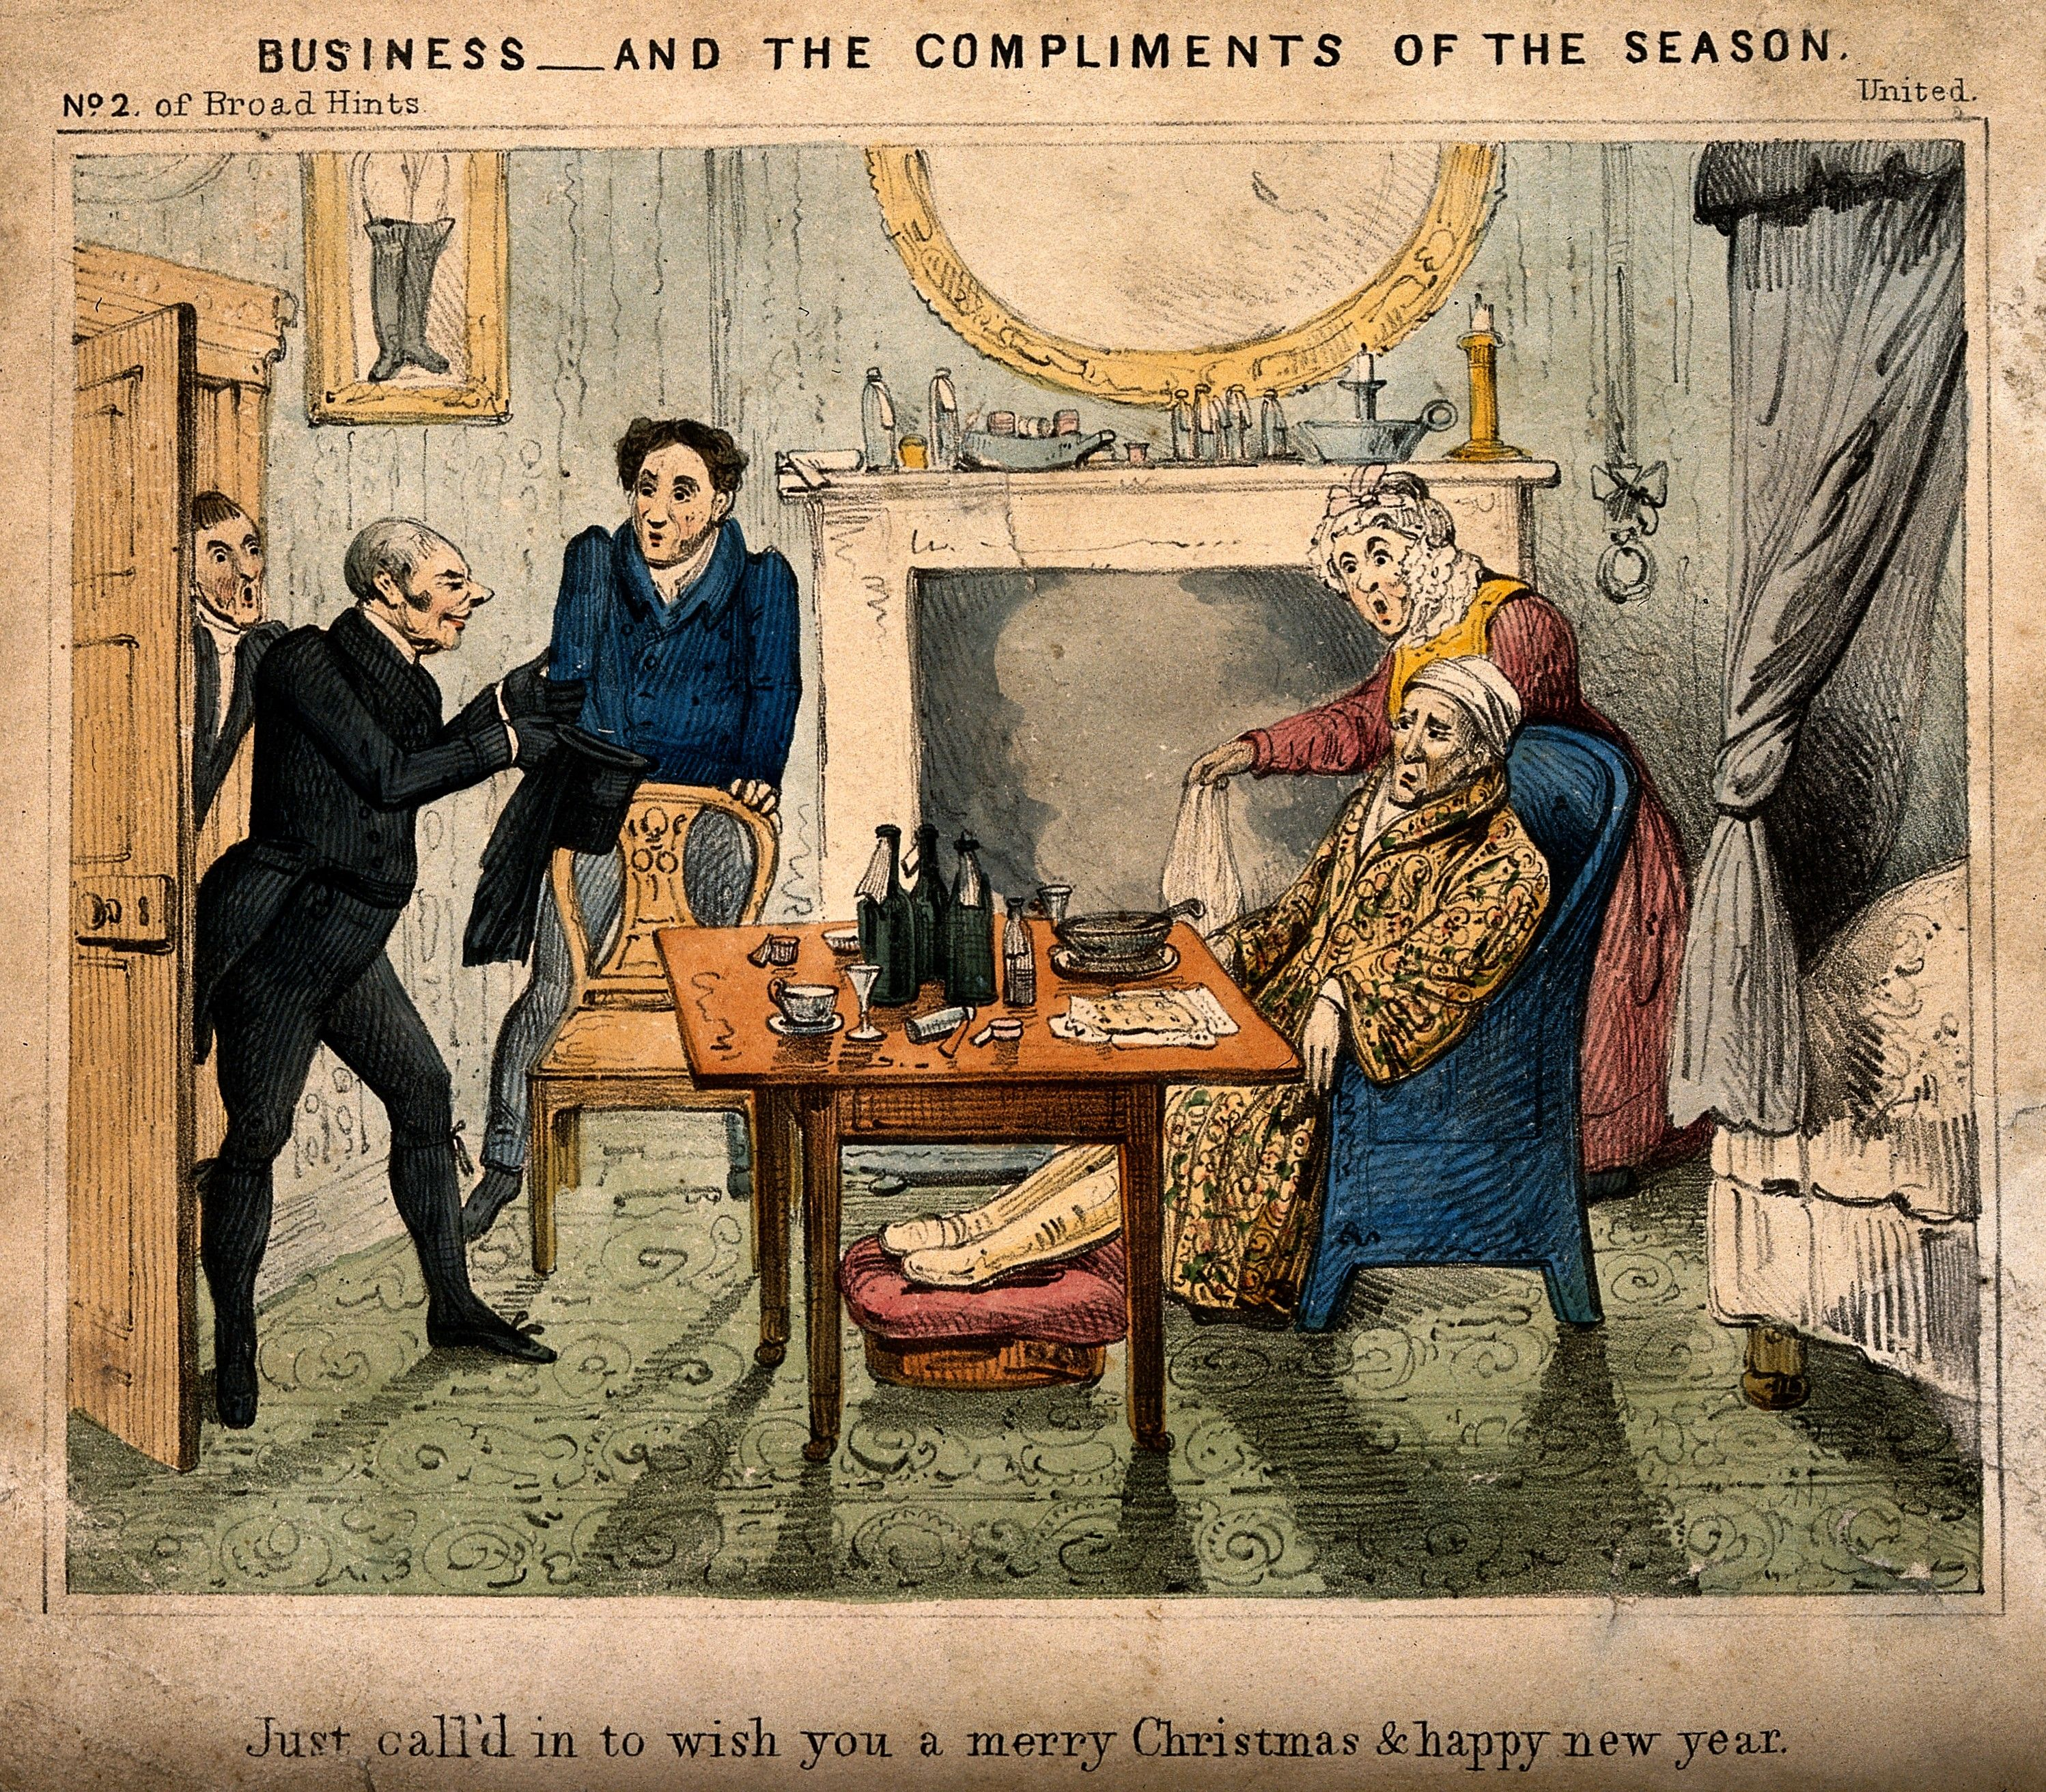 19th century british christmas and new year greetings from a doctor to a patient